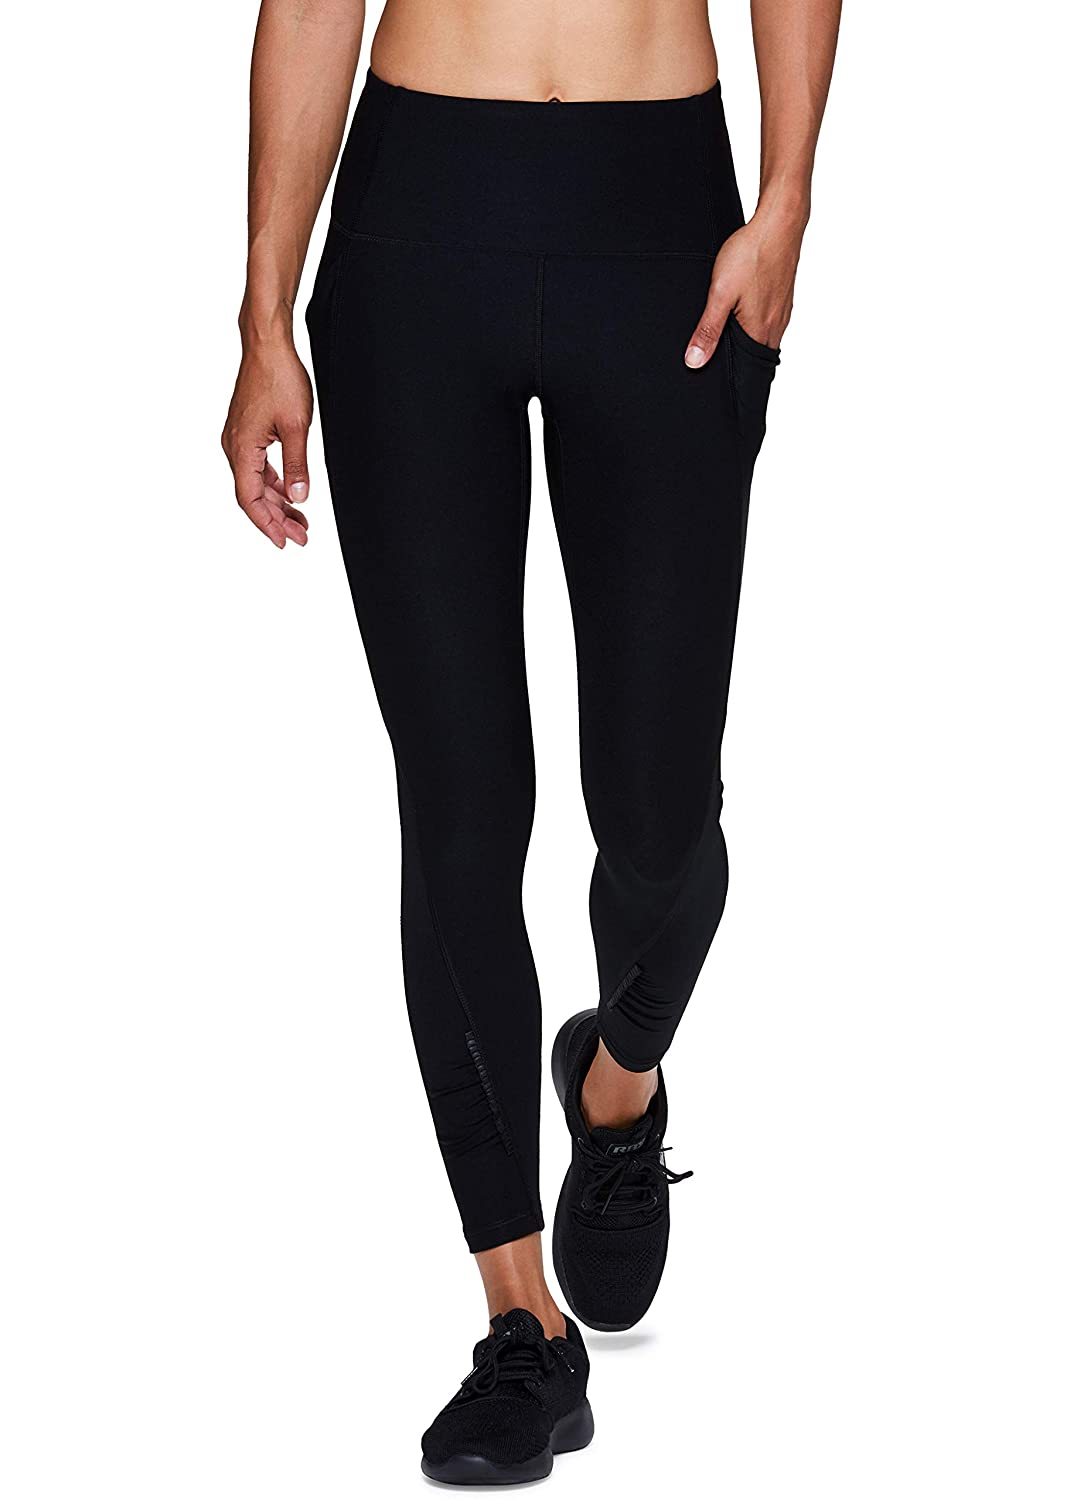 da114bd4f1345 RBX Active Women's Workout Yoga 7/8 Ankle Legging with Side Detail at  Amazon Women's Clothing store: